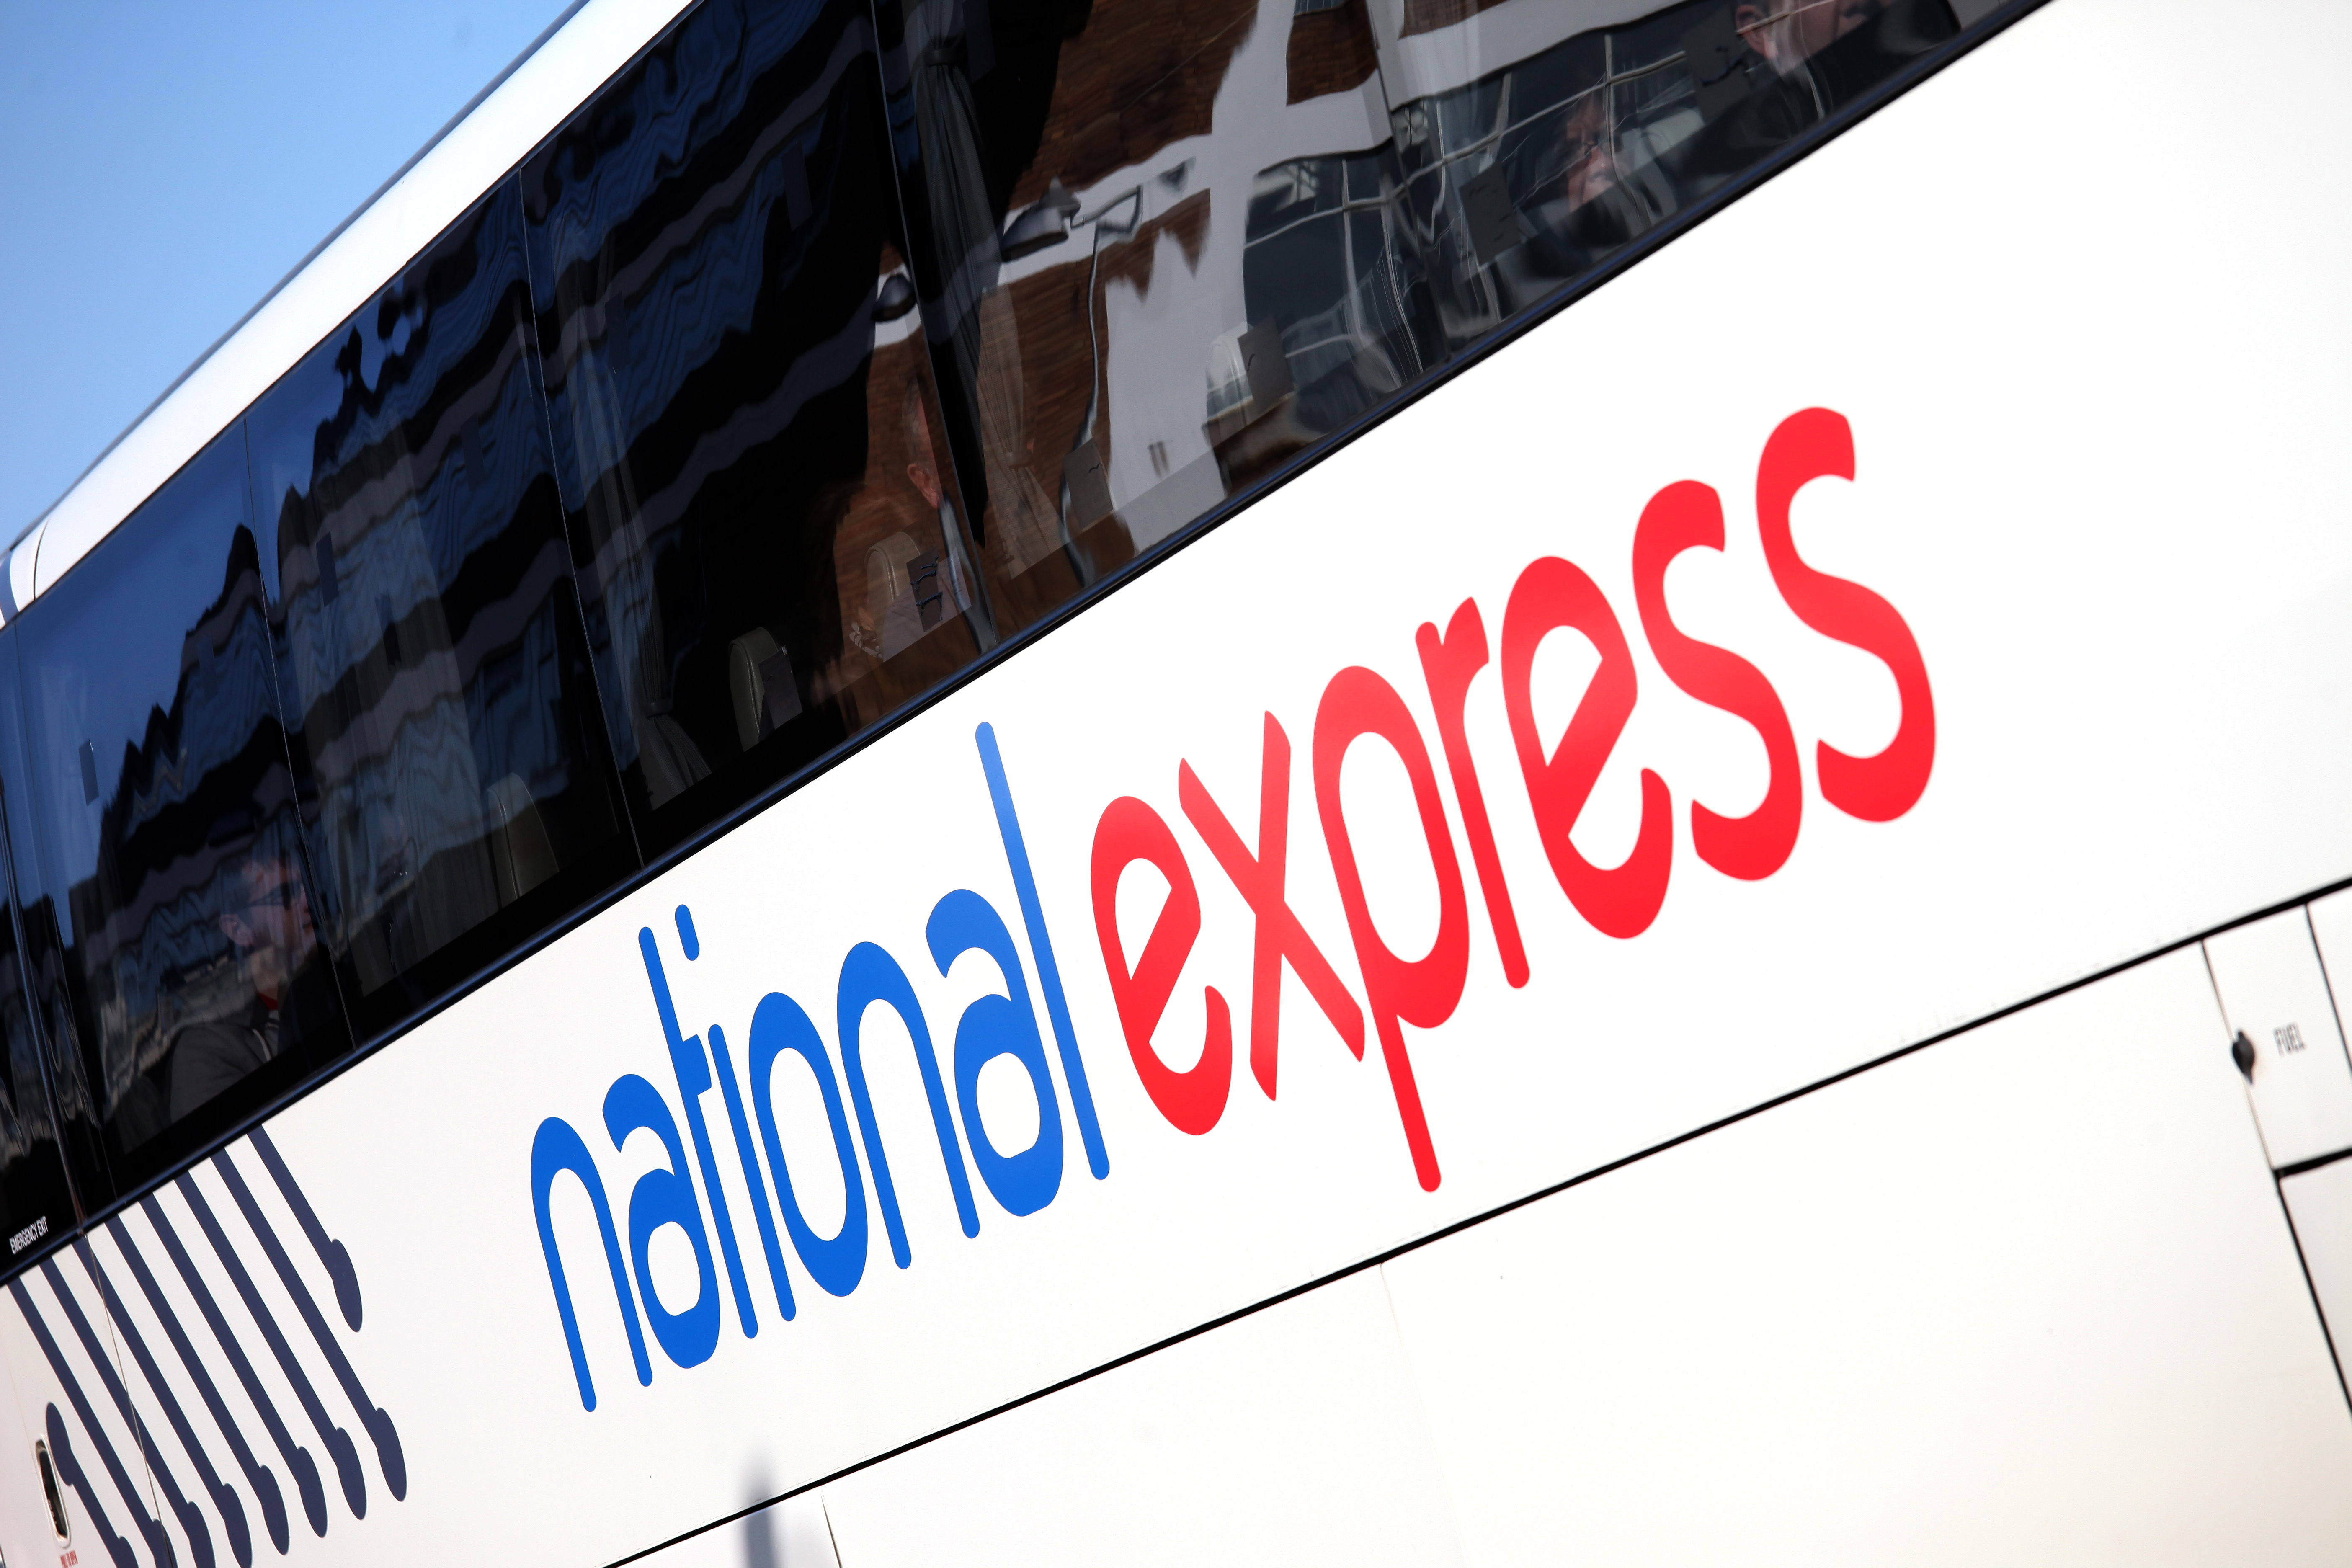 Image library national express group plc - National express head office number ...